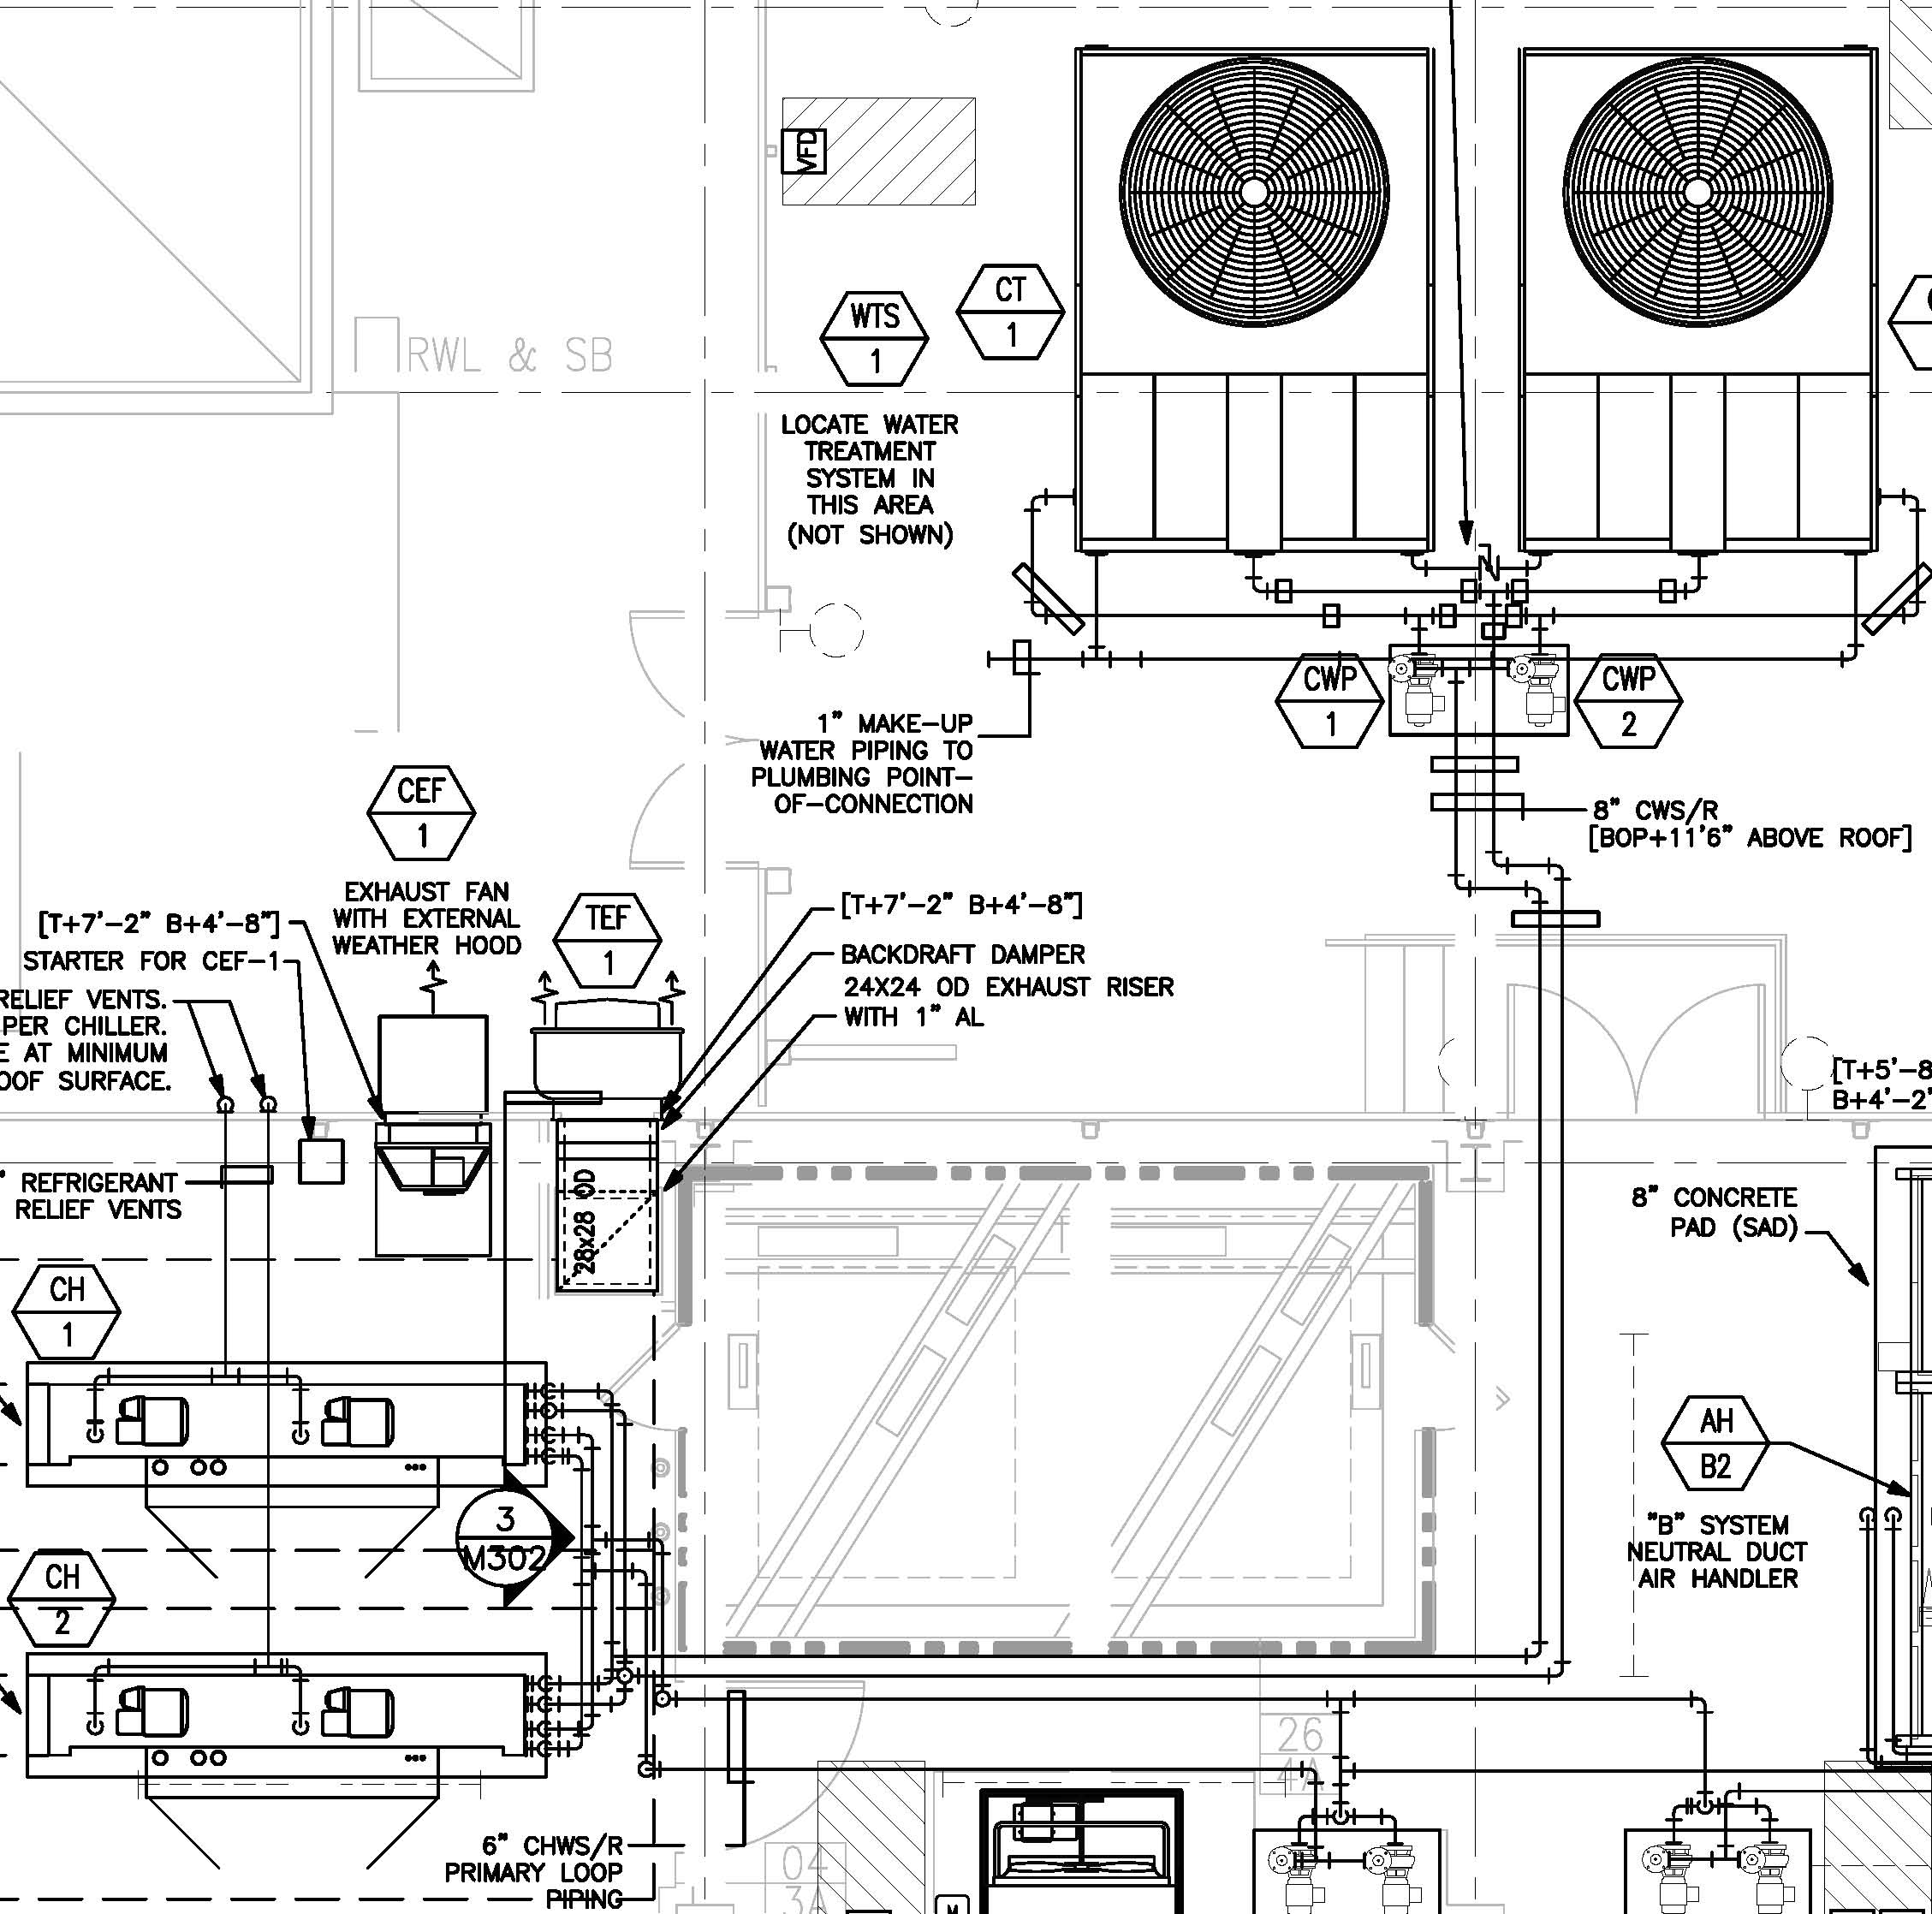 Piping Diagram For Walk In Cooler